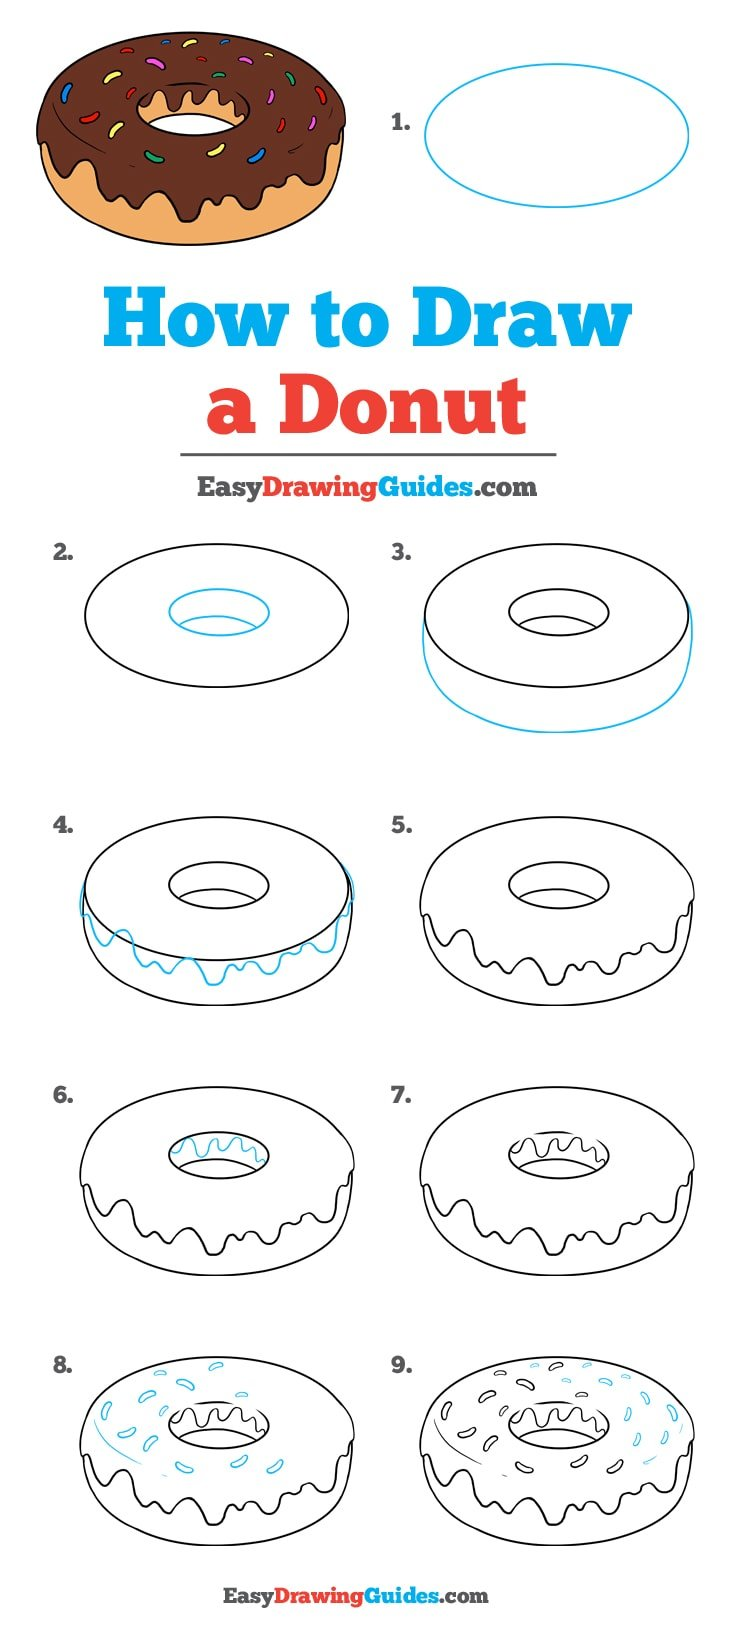 How to Draw Donut